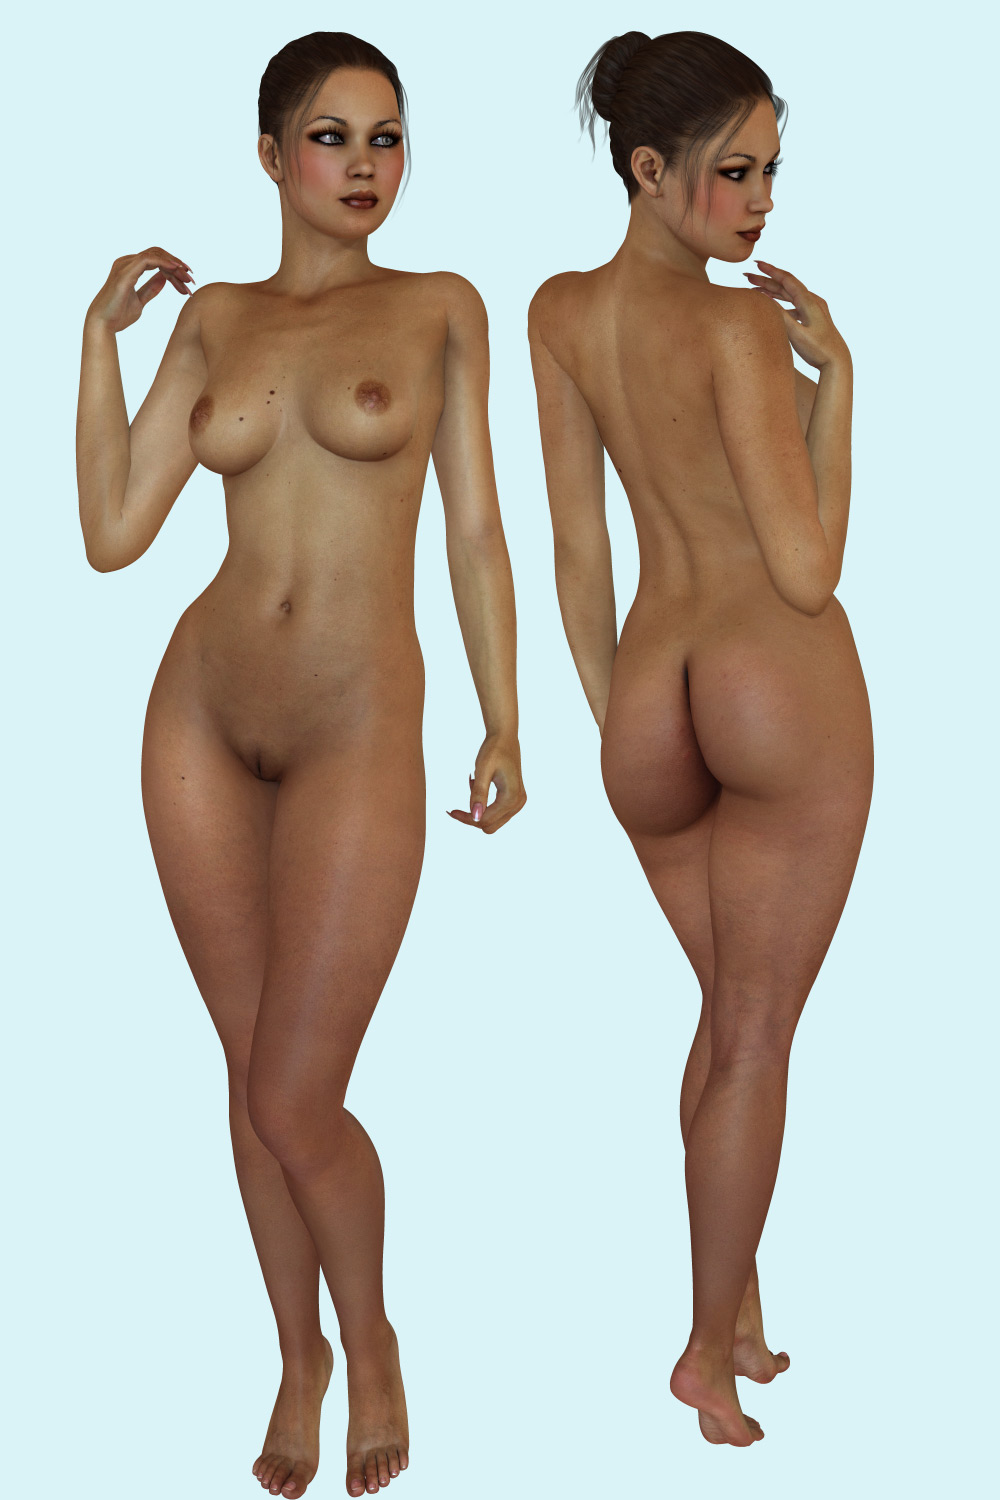 Daz 3d nude mod xxx housewives